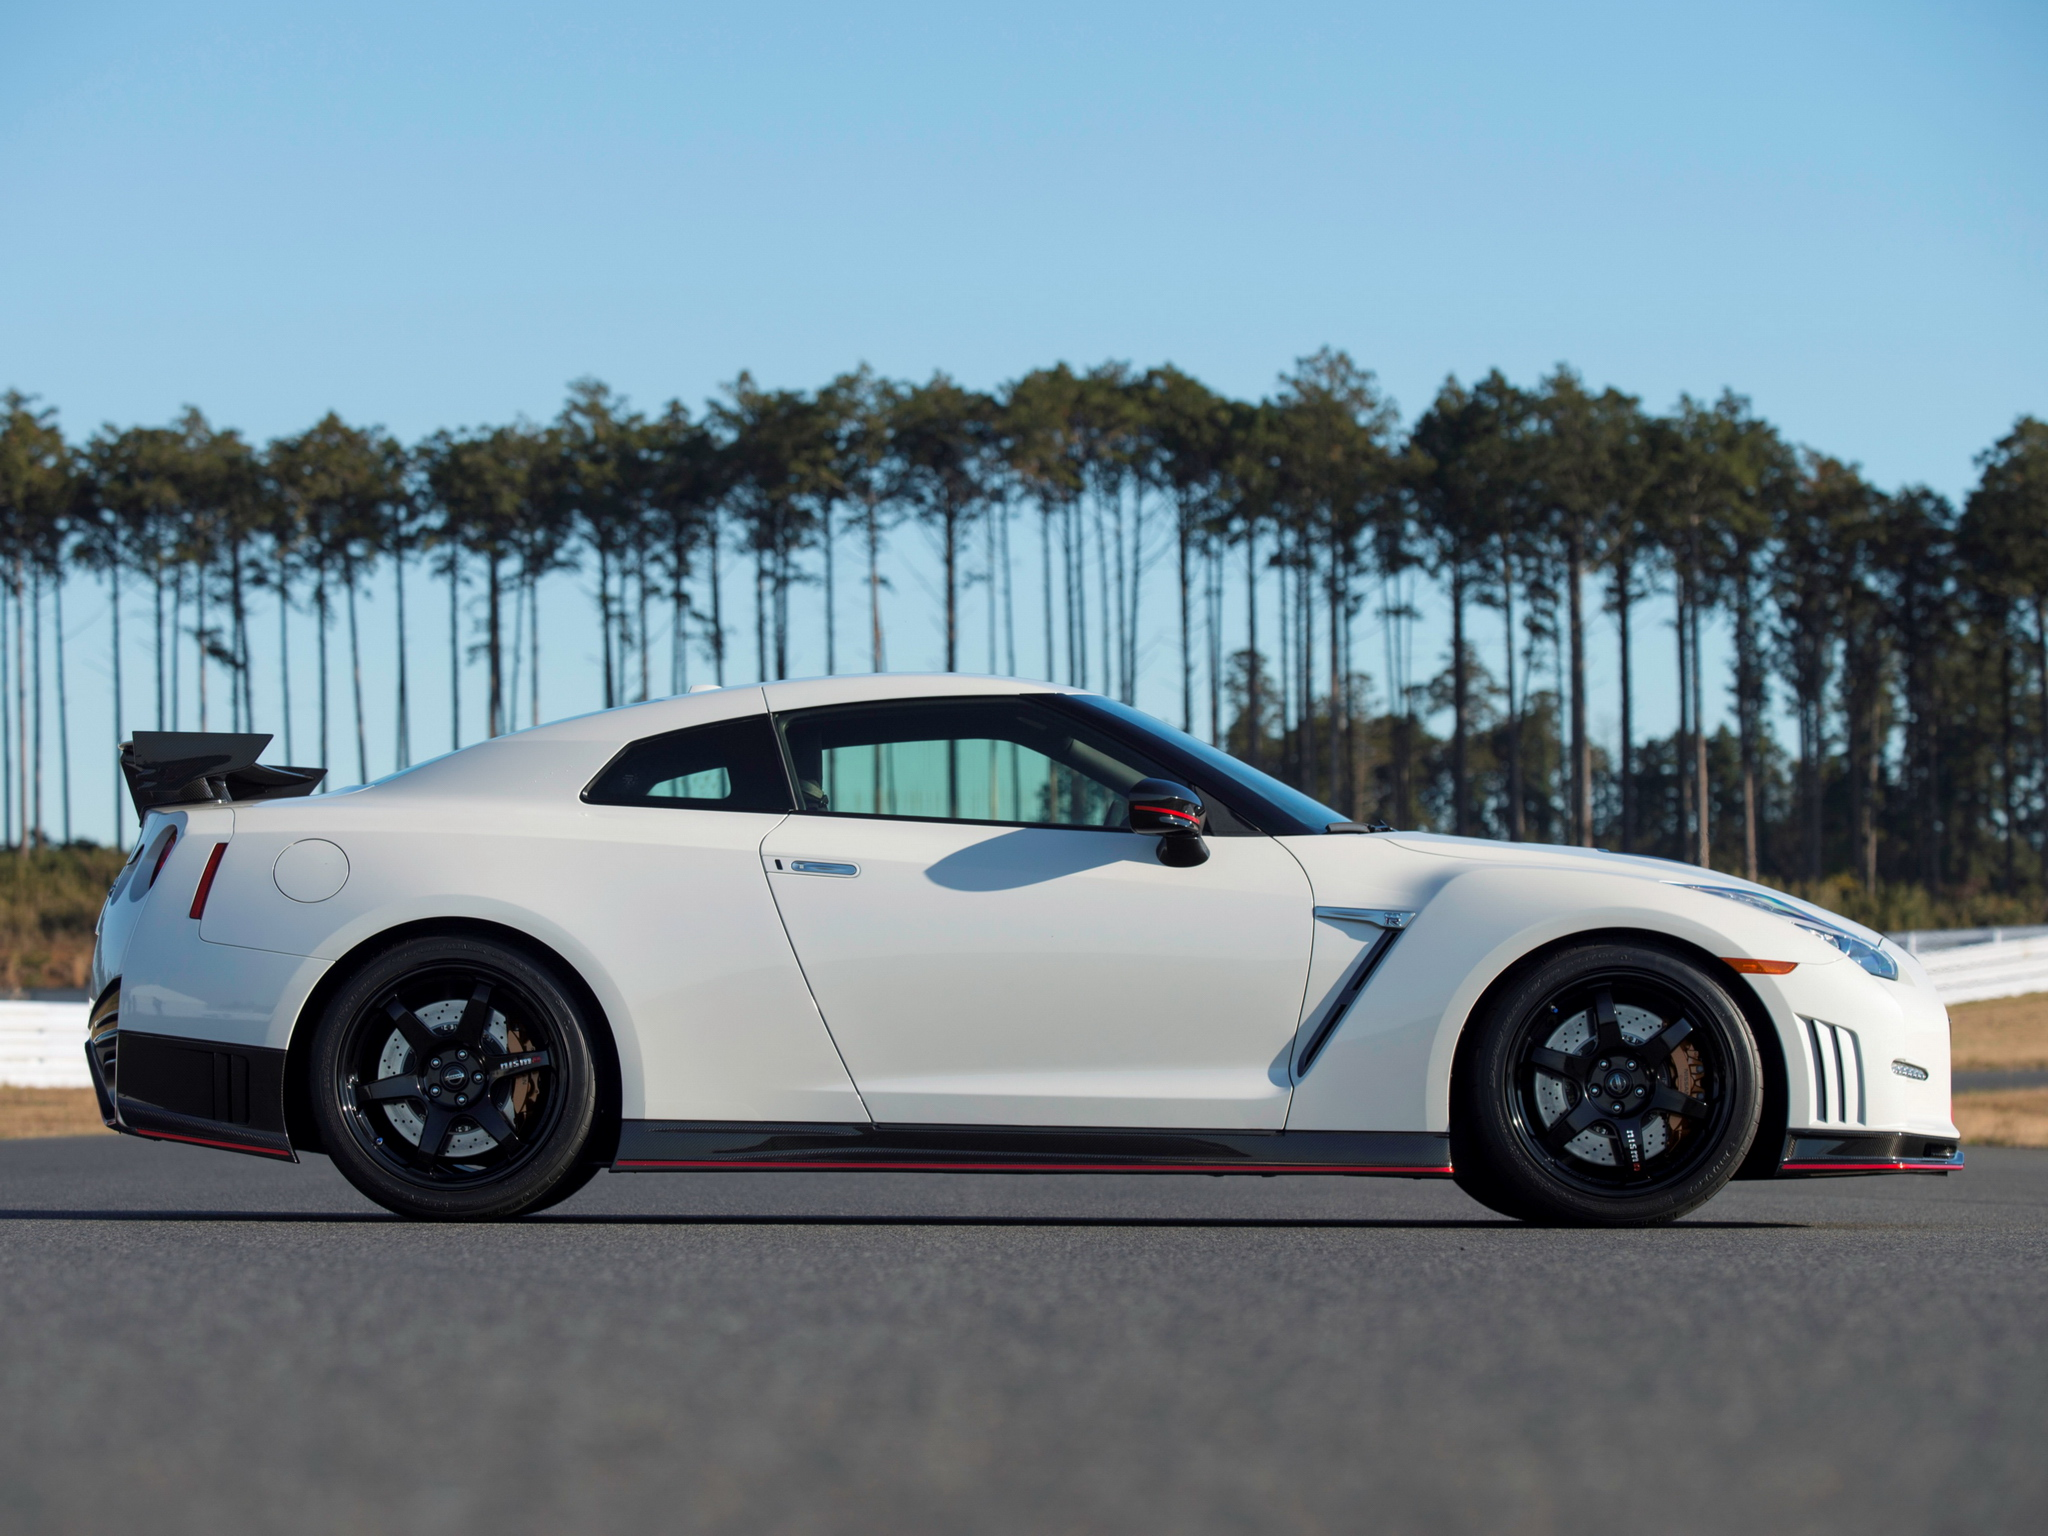 2014 nismo nissan gt r r35 supercar f wallpaper 2048x1536 207117 wallpaperup. Black Bedroom Furniture Sets. Home Design Ideas